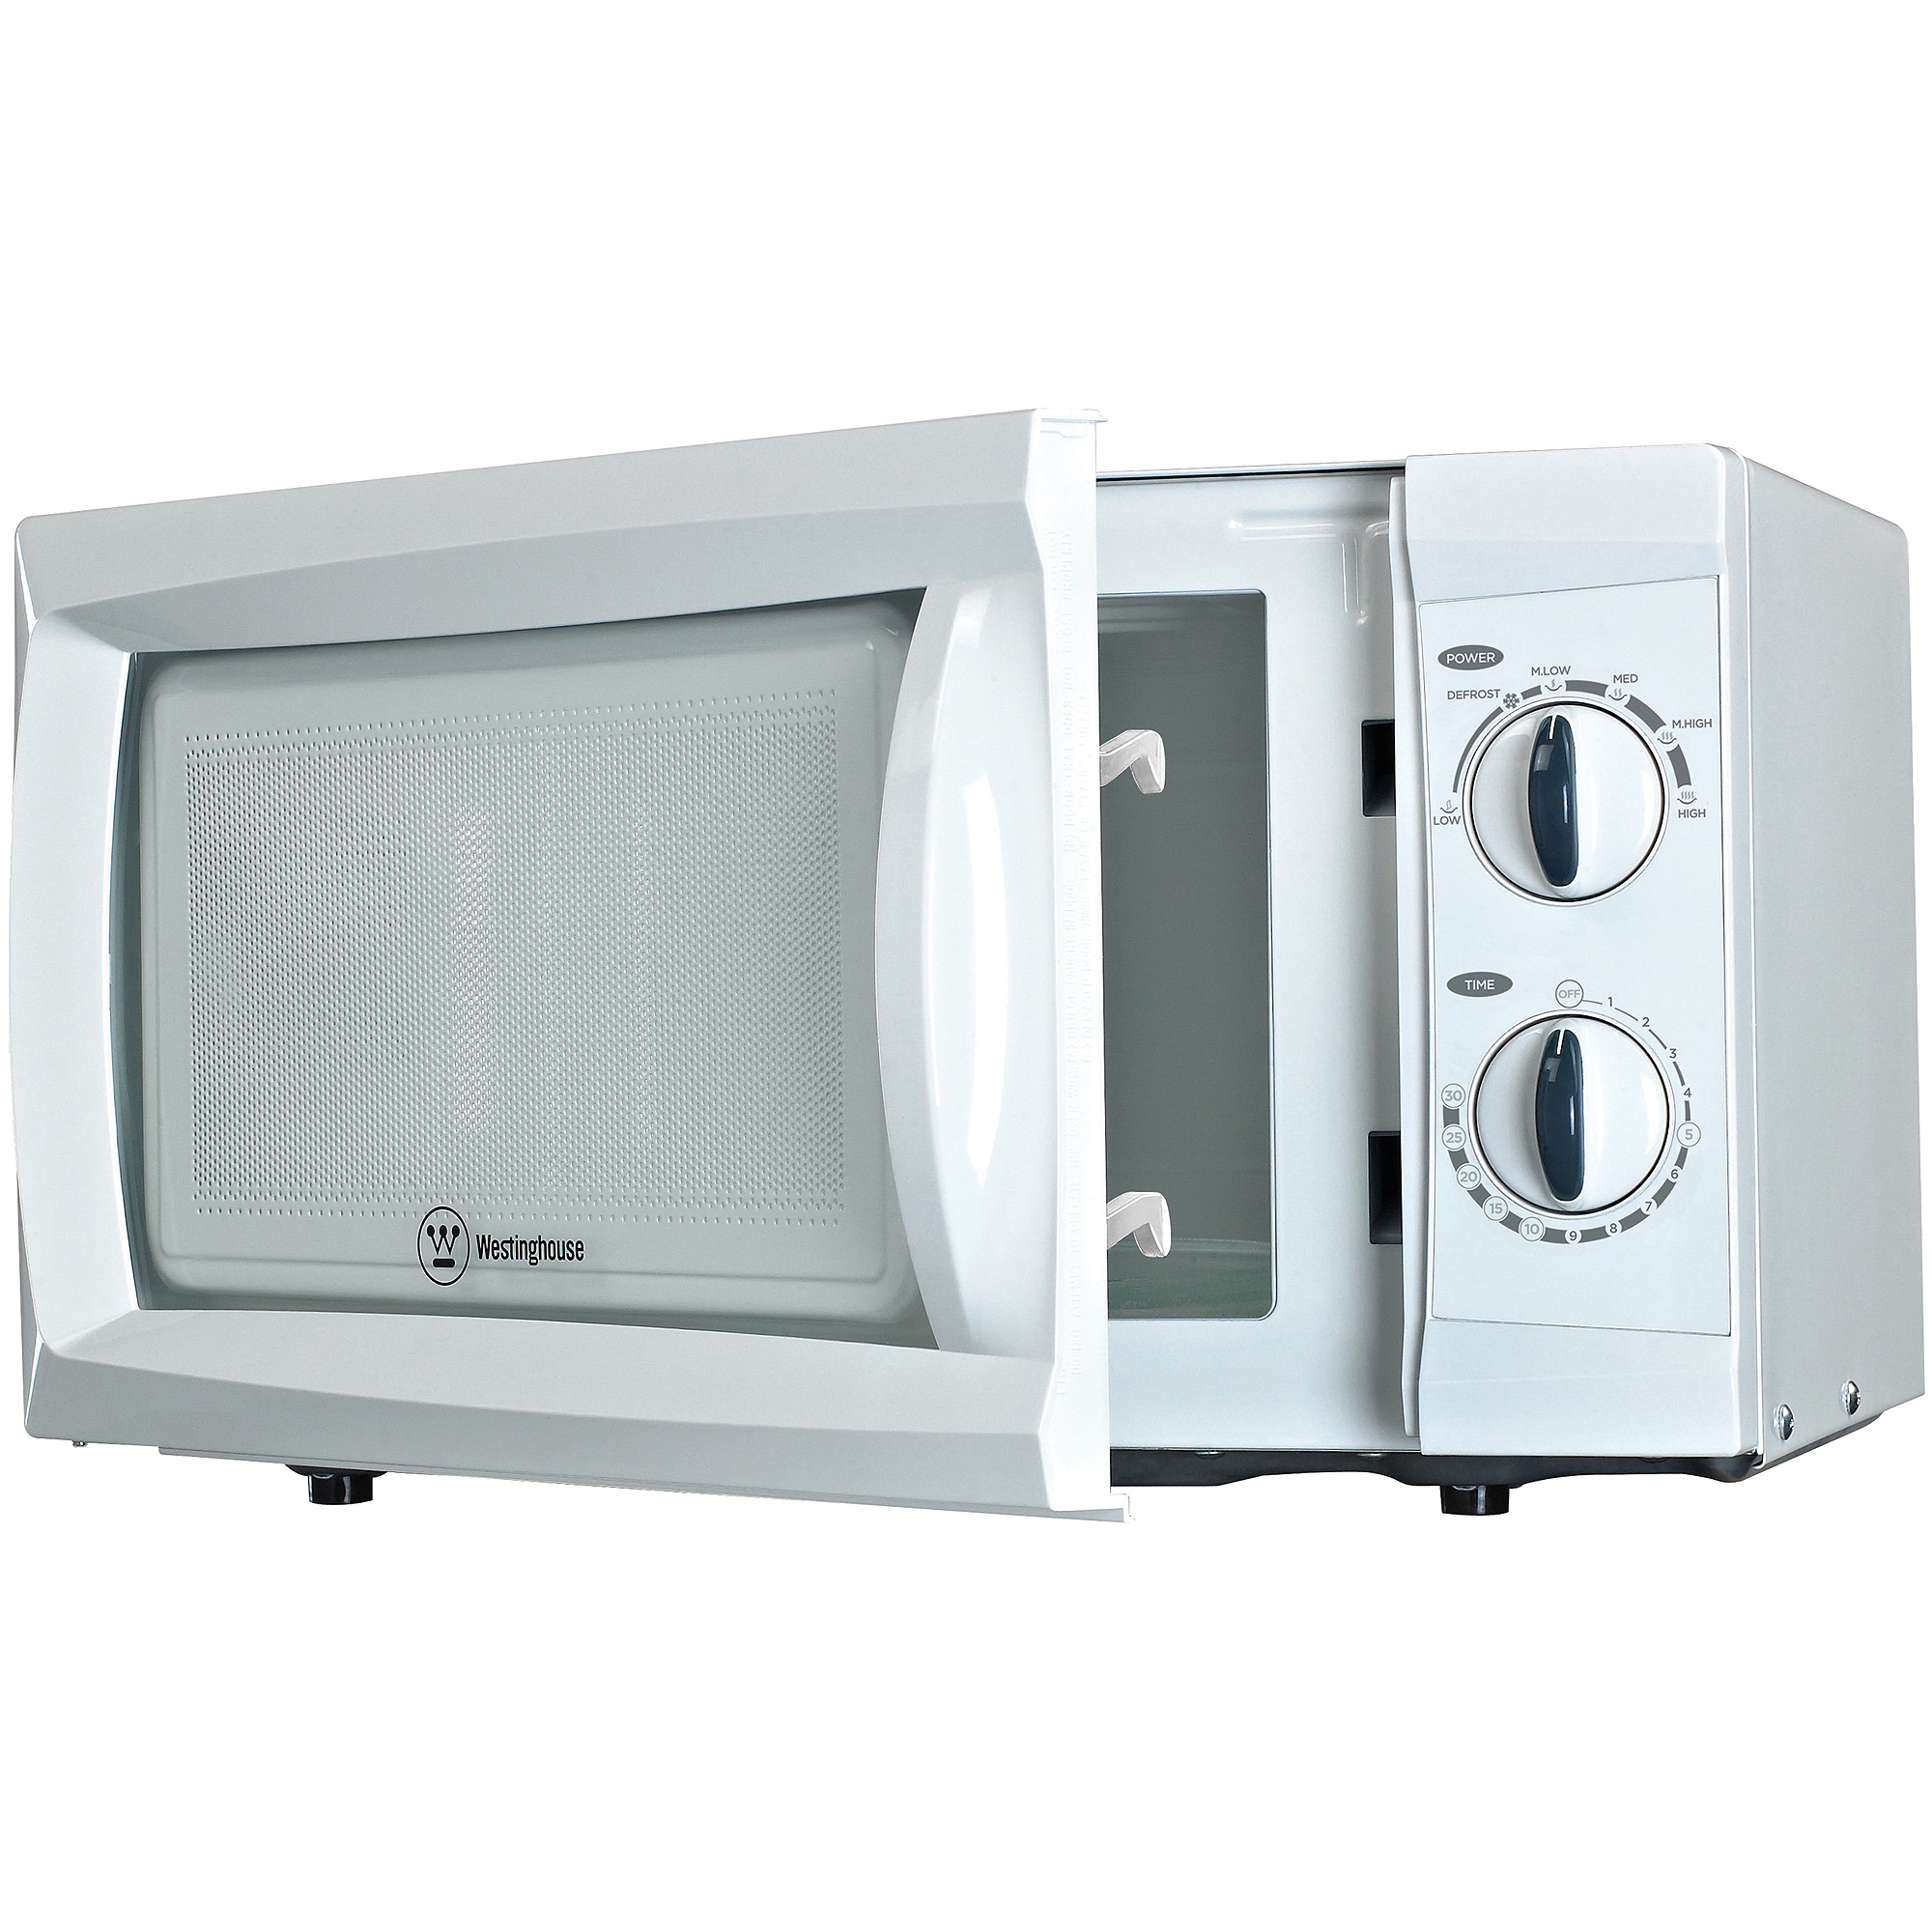 Westinghouse 0.6 cu ft Microwave, White